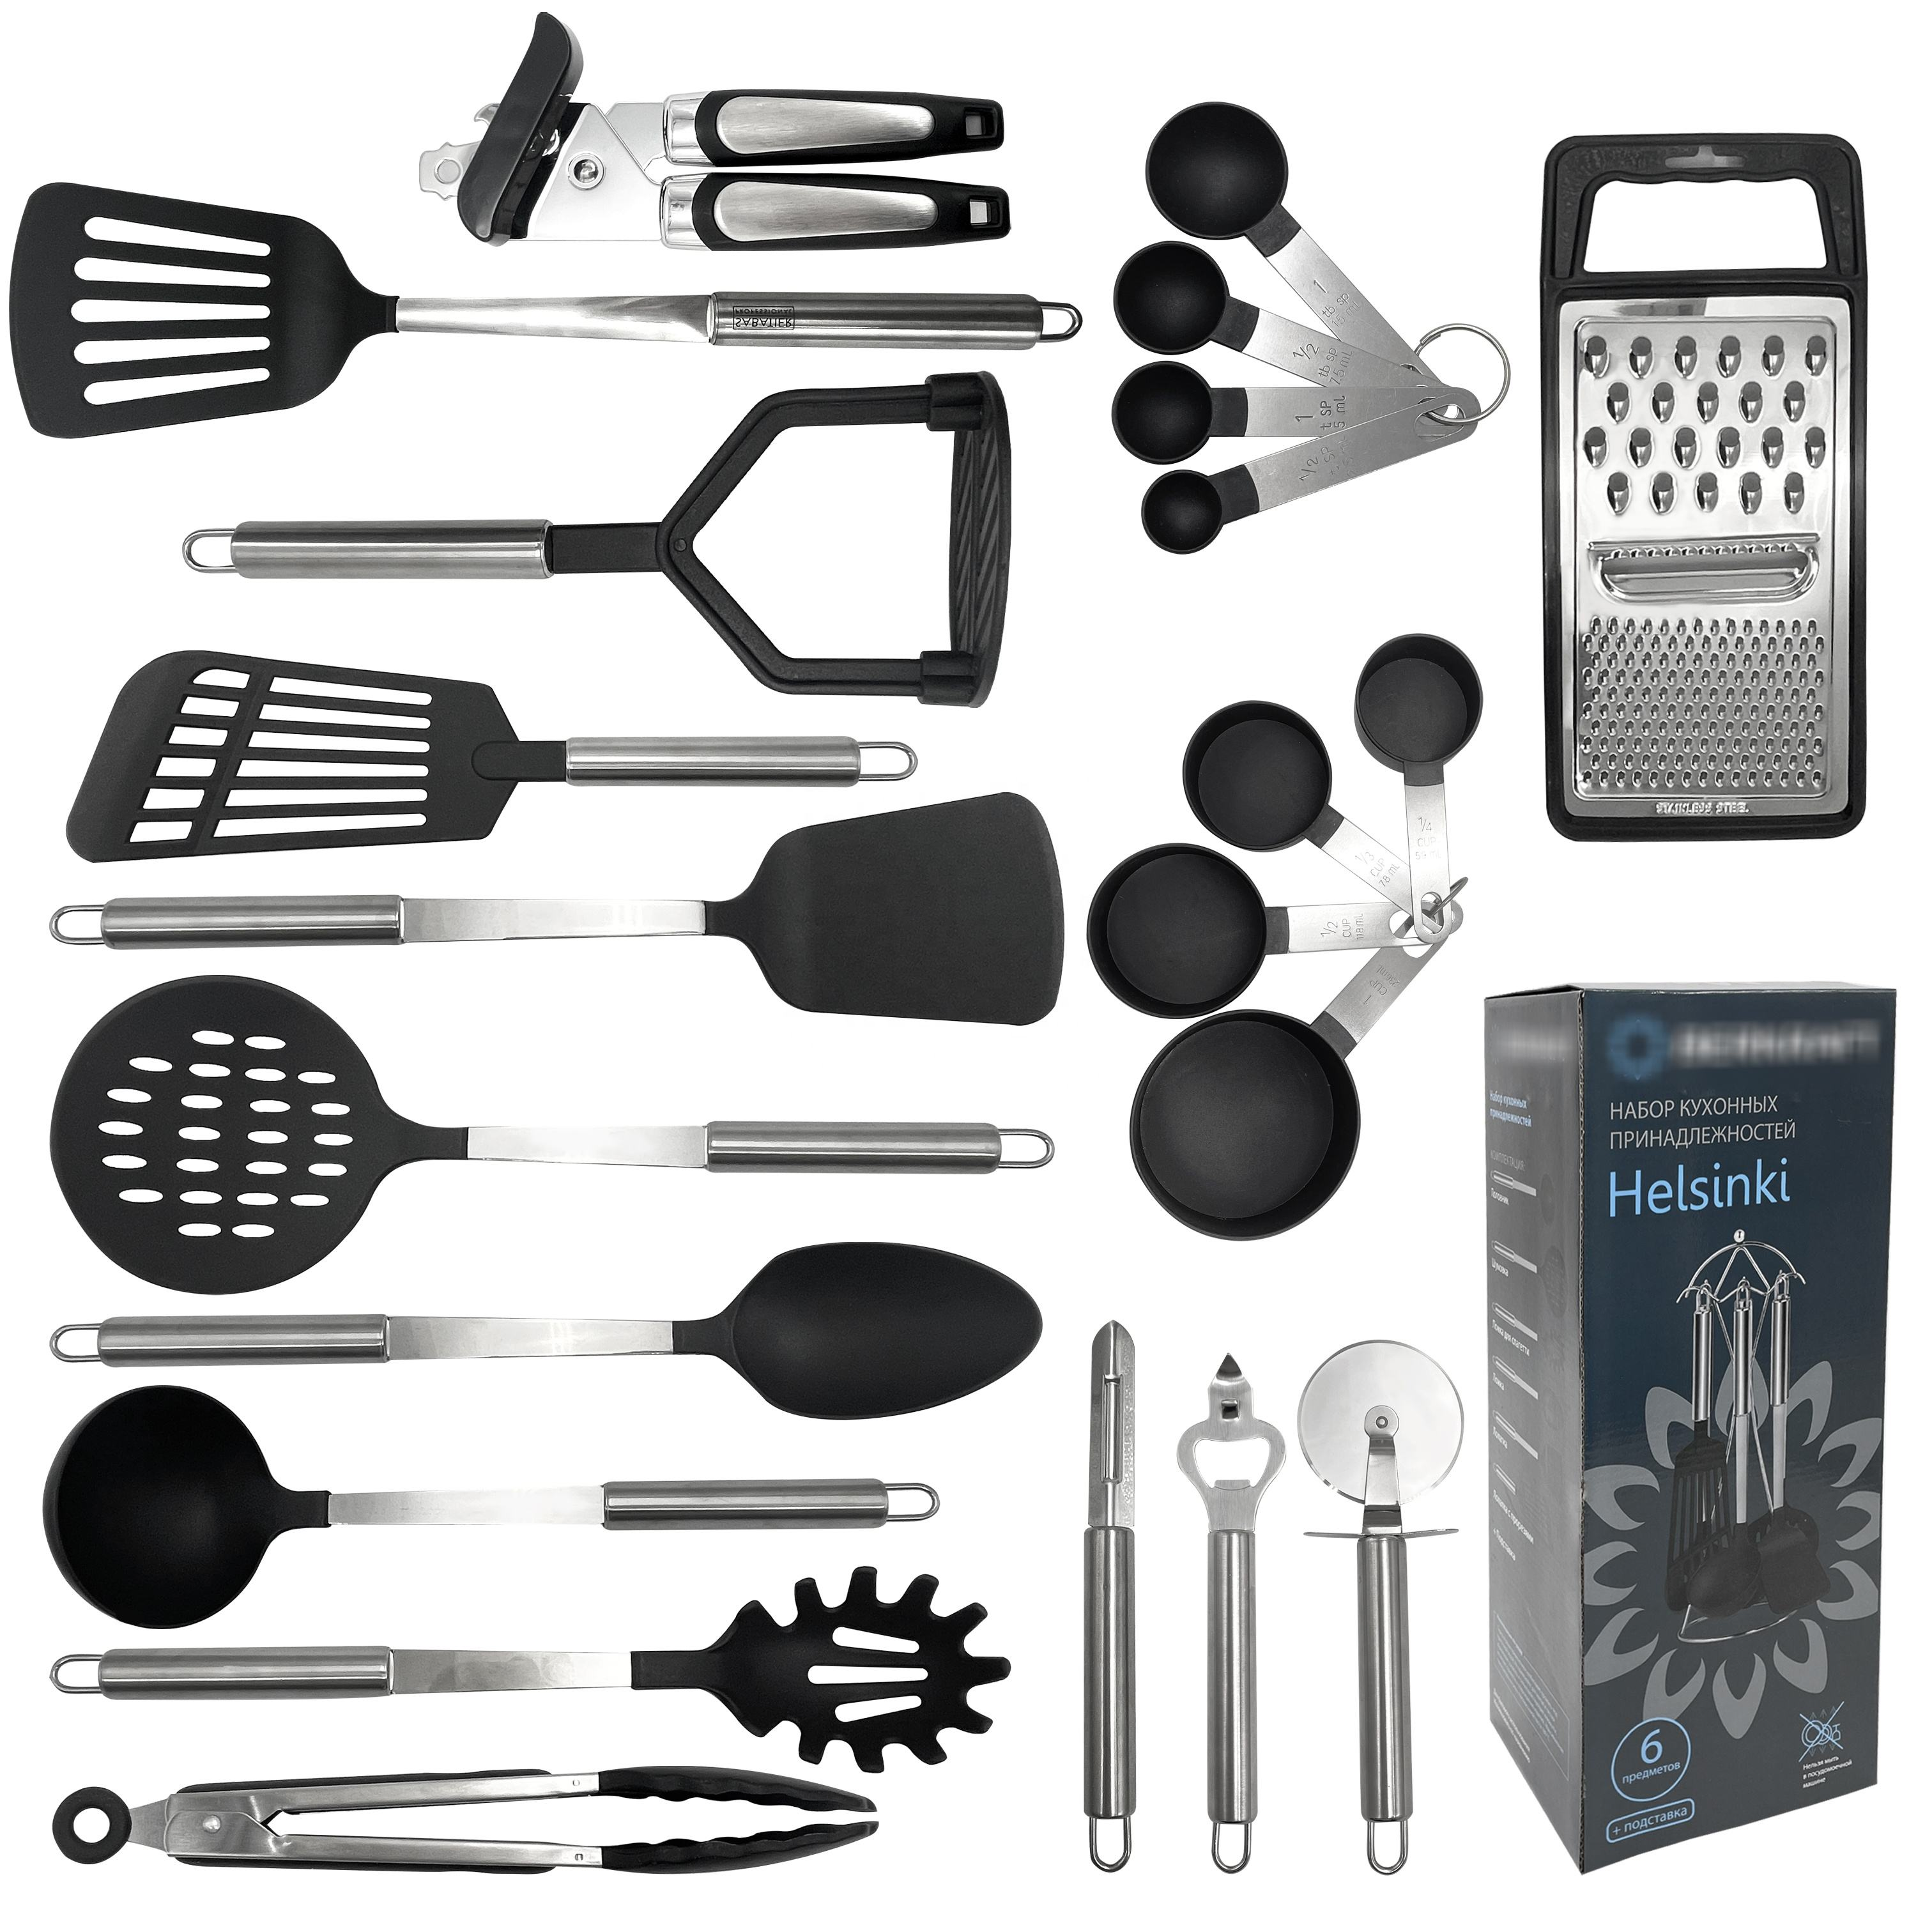 Professional kitchen utensils supplier household Nylon kitchen utensils Stainless steel handle Cooking Utensils Set